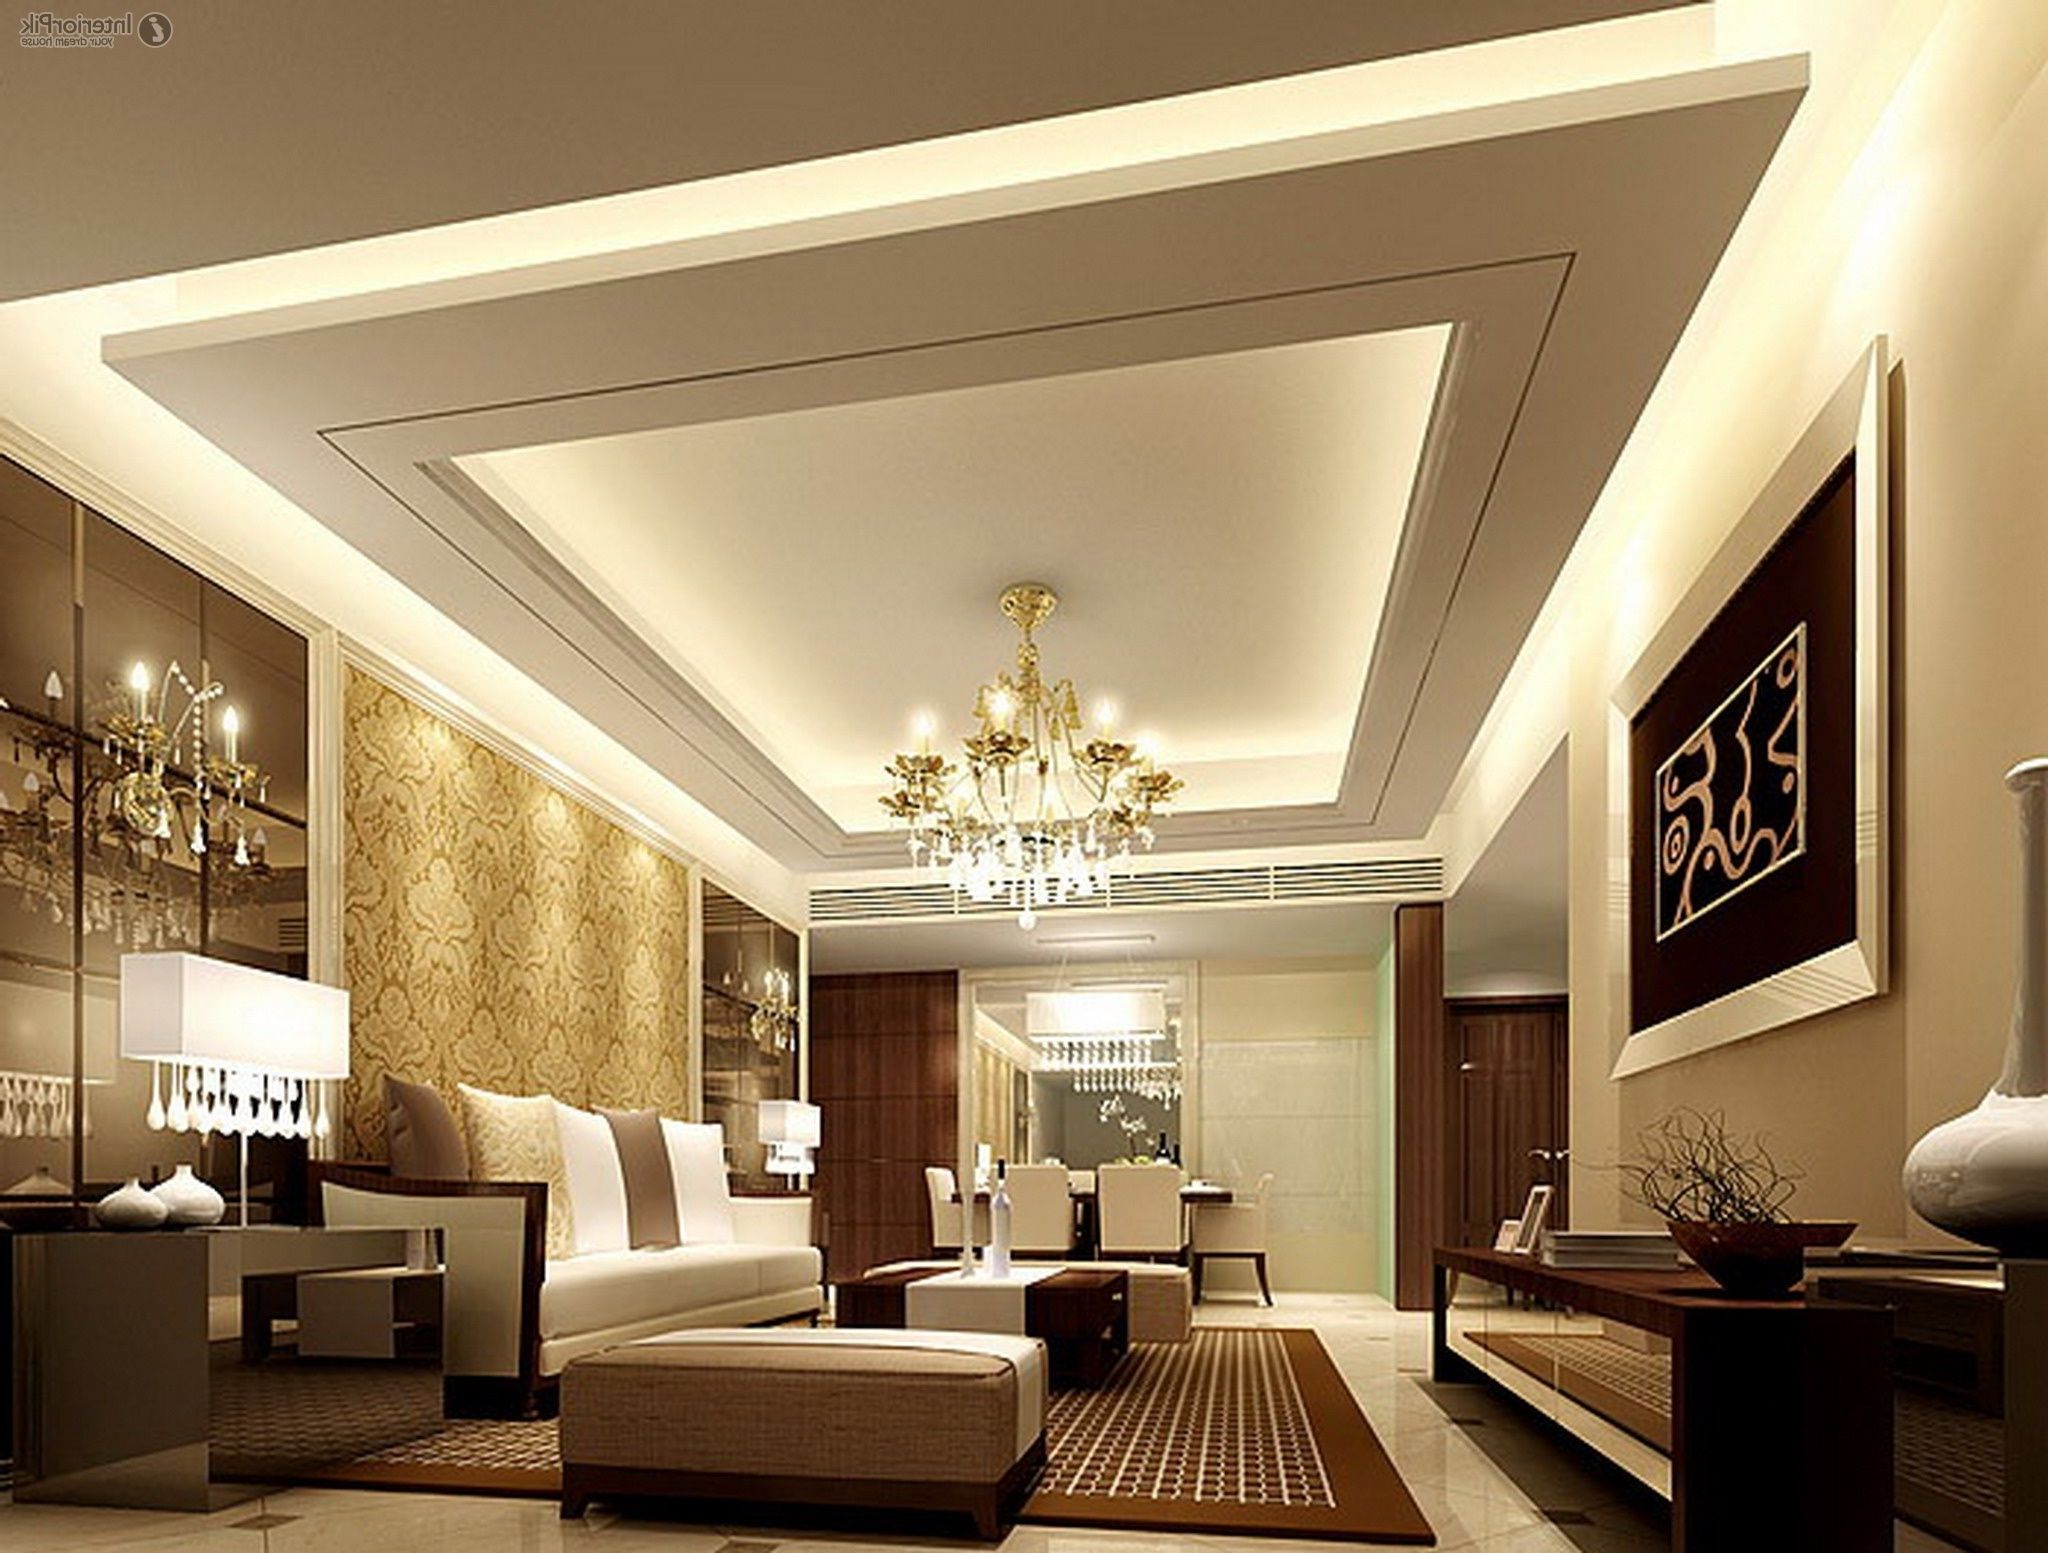 Ceiling Designs Best 25 Ceiling Design For Home Ideas On Pinterest  Ceiling